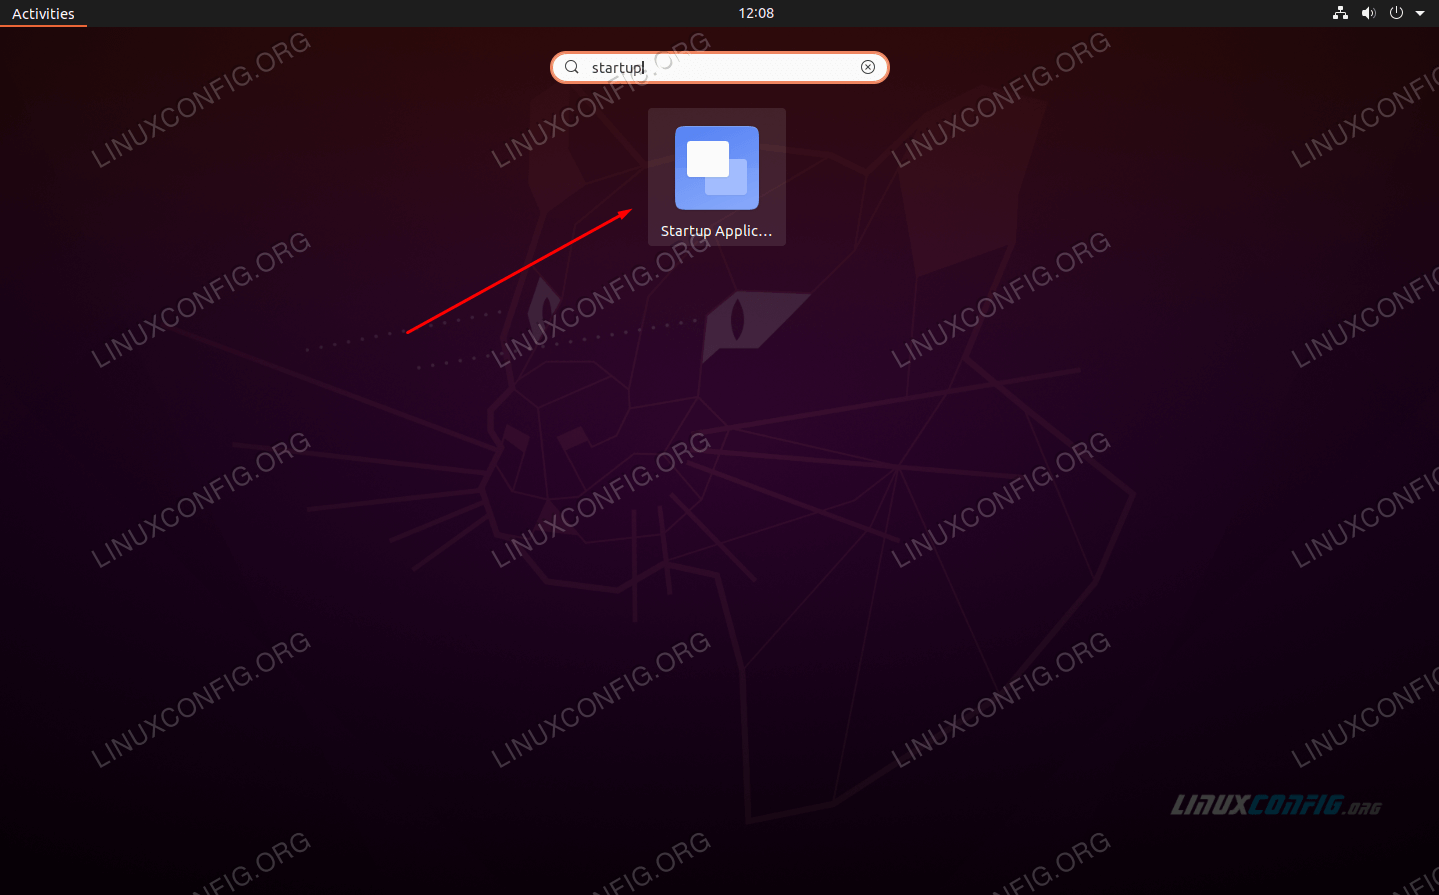 Open up Startup Applcations from the Ubuntu application launcher